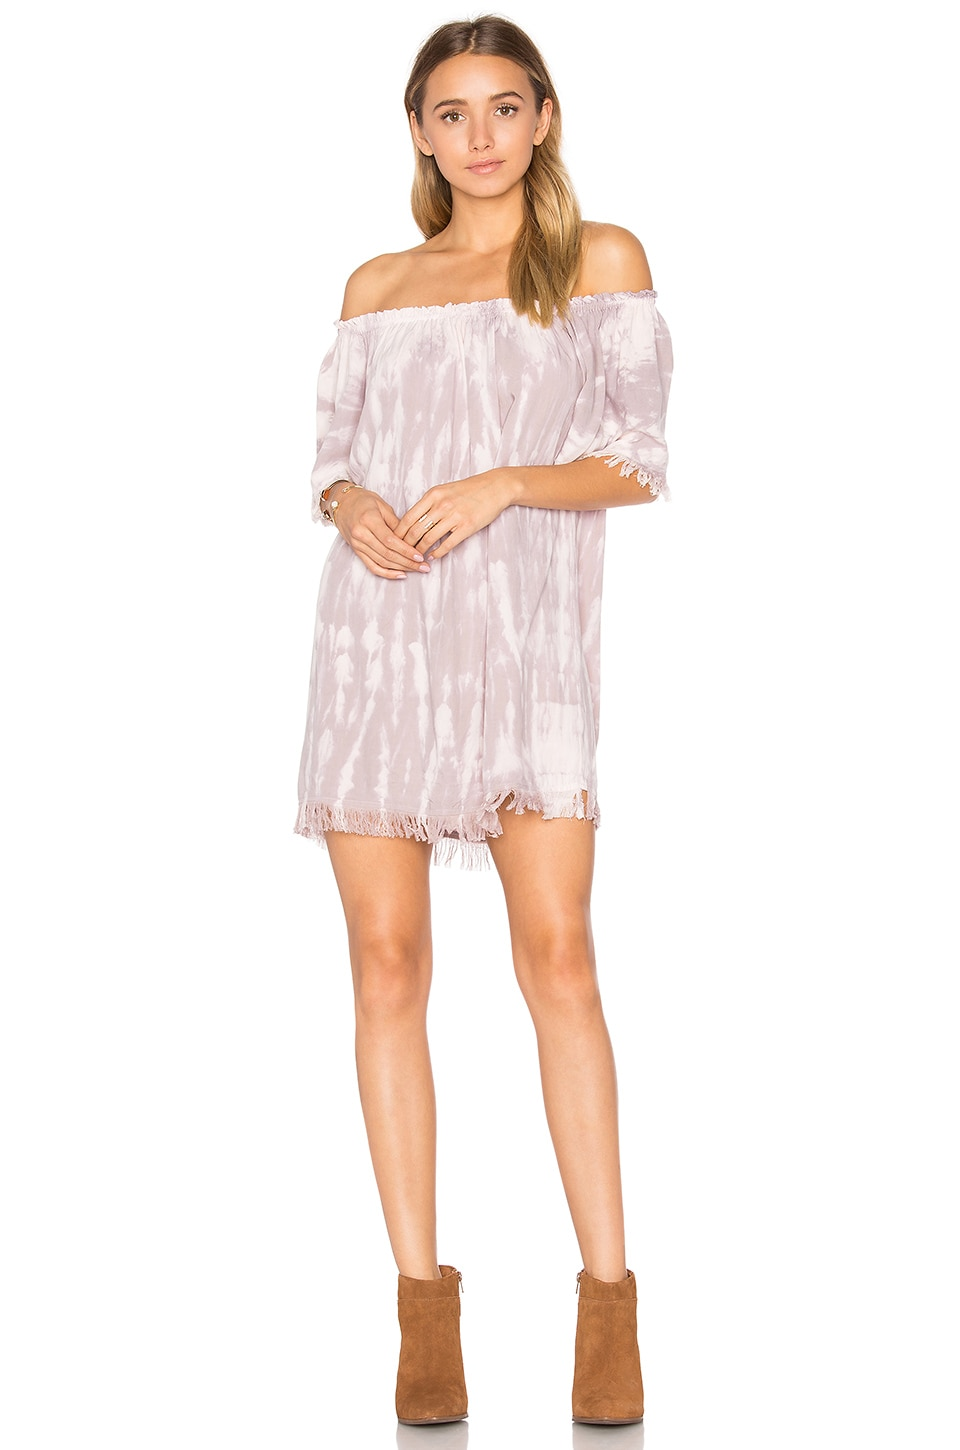 Tiare Hawaii Iris Dress in Mauve Nude